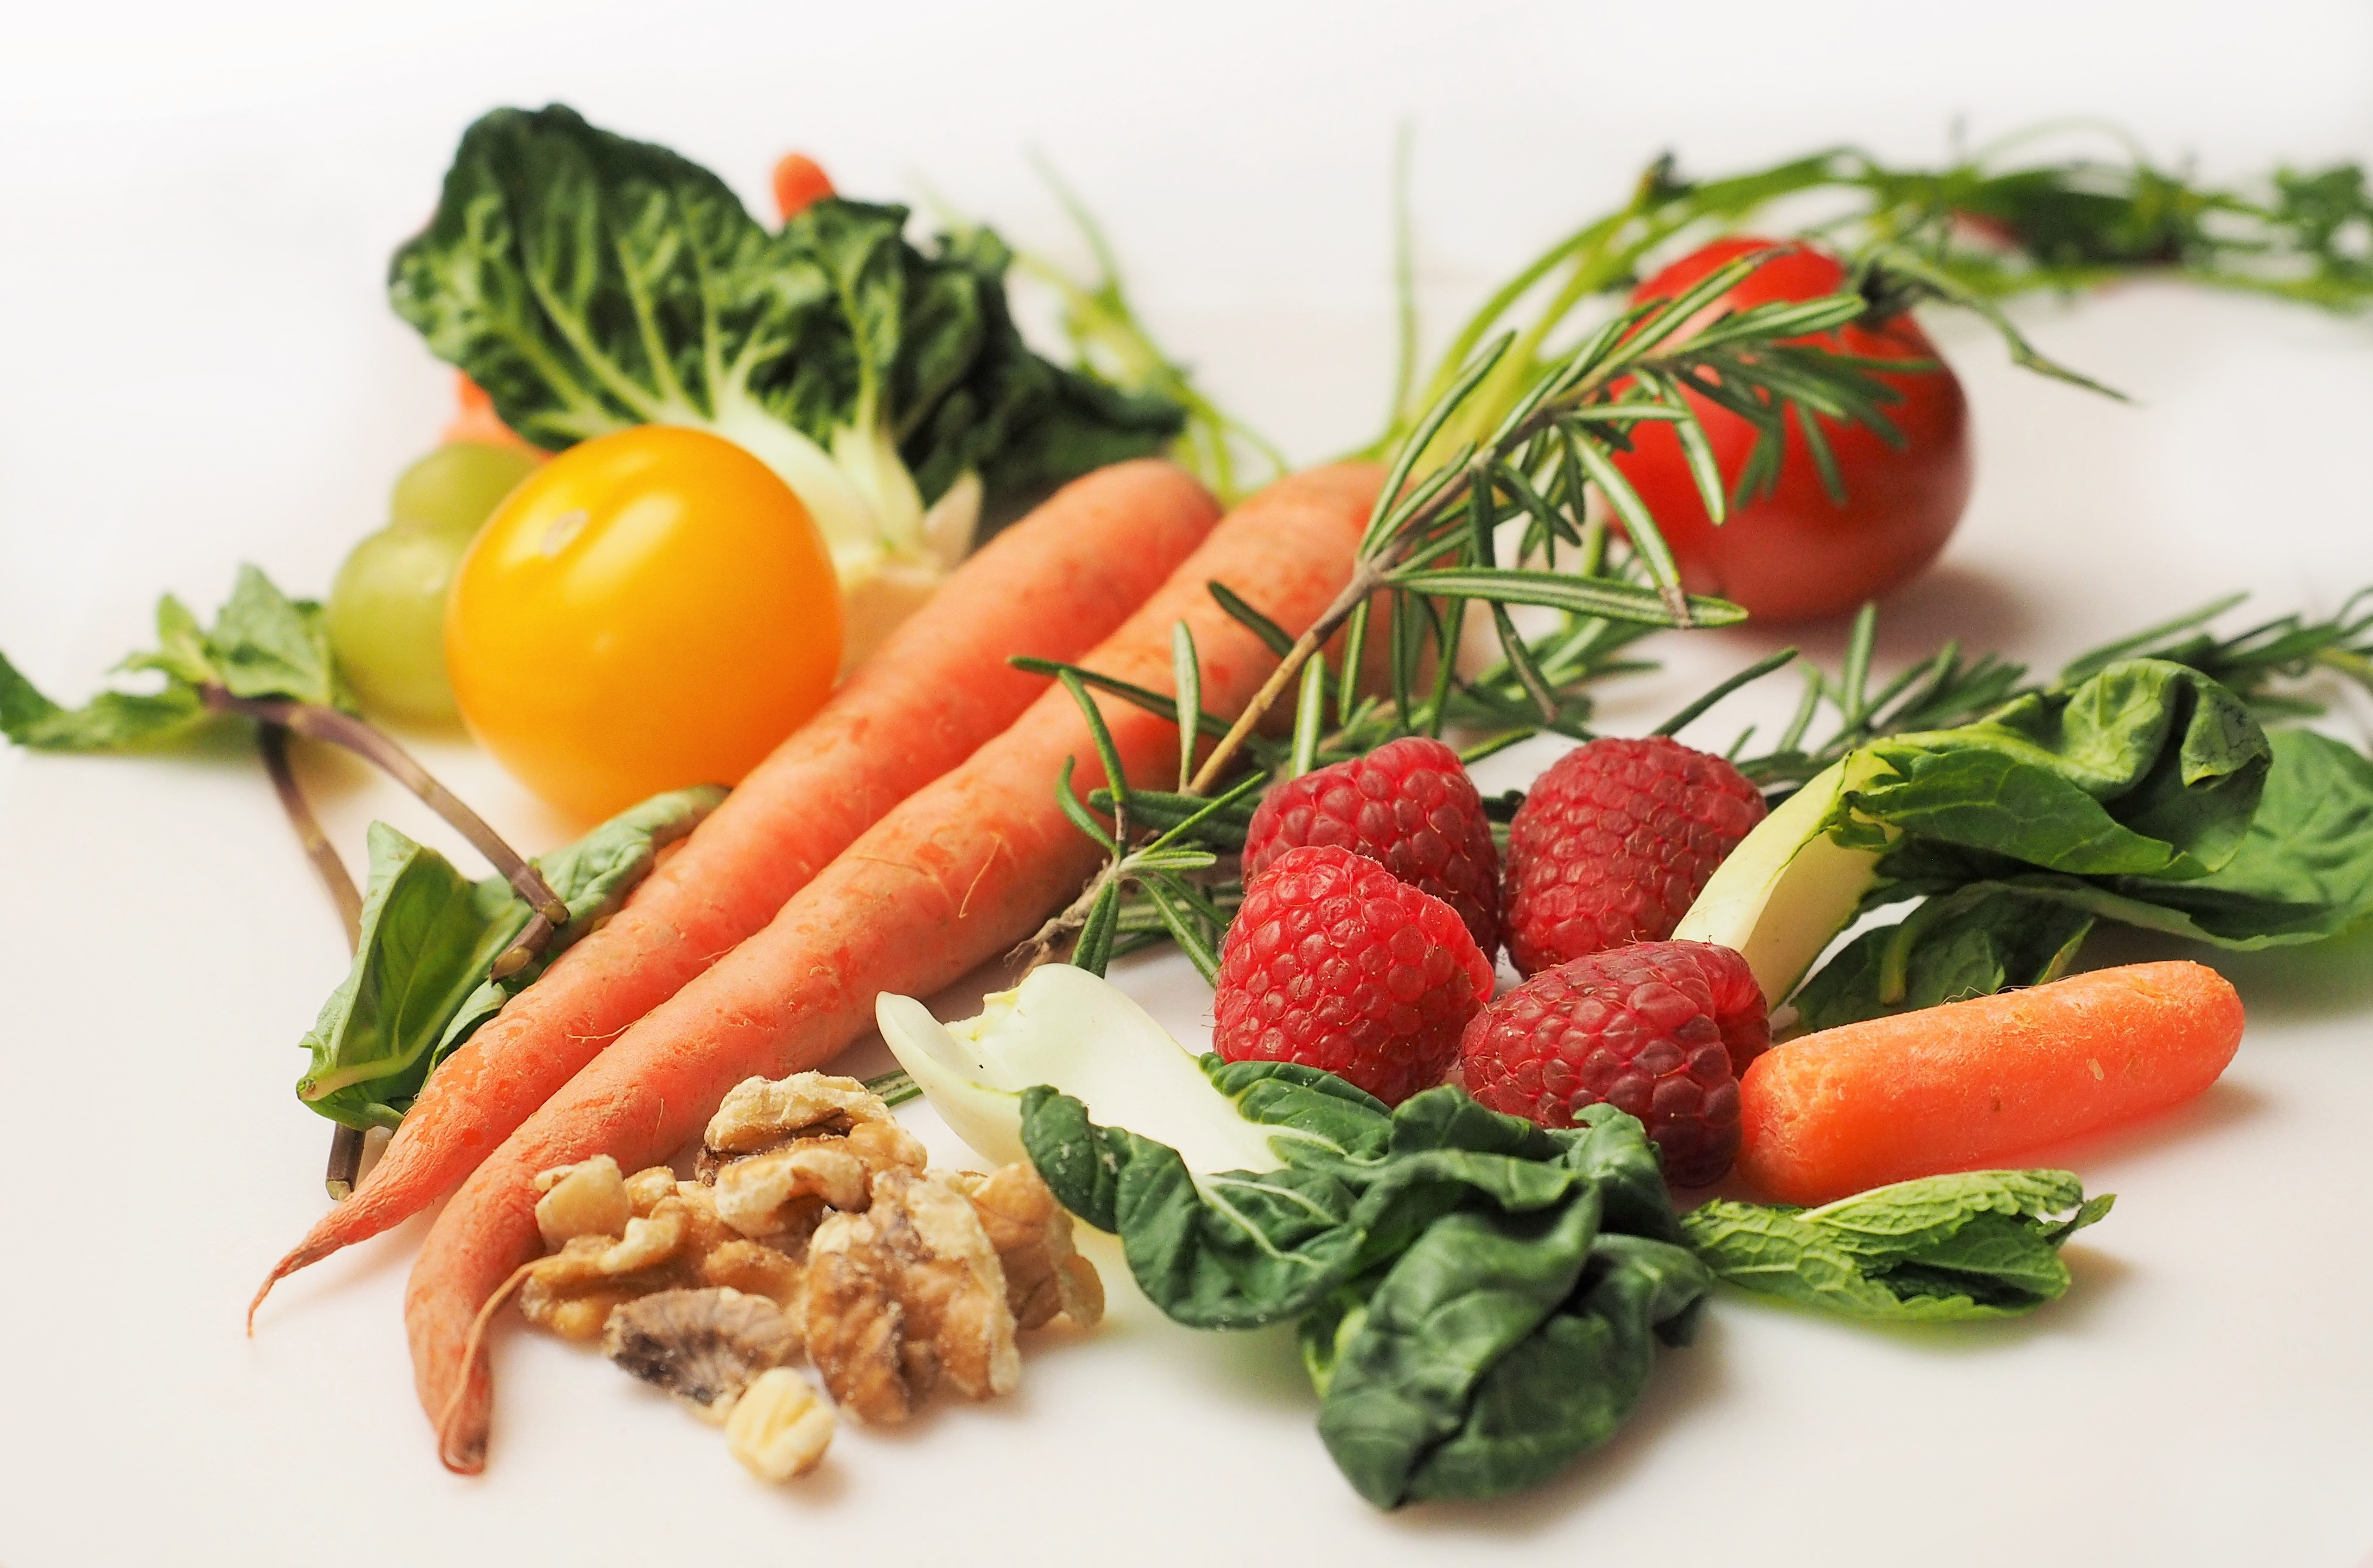 A photo of fresh carrots, lettuce, nuts, herbs, tomatoes and raspberries. Diet is essential for a good sleep.